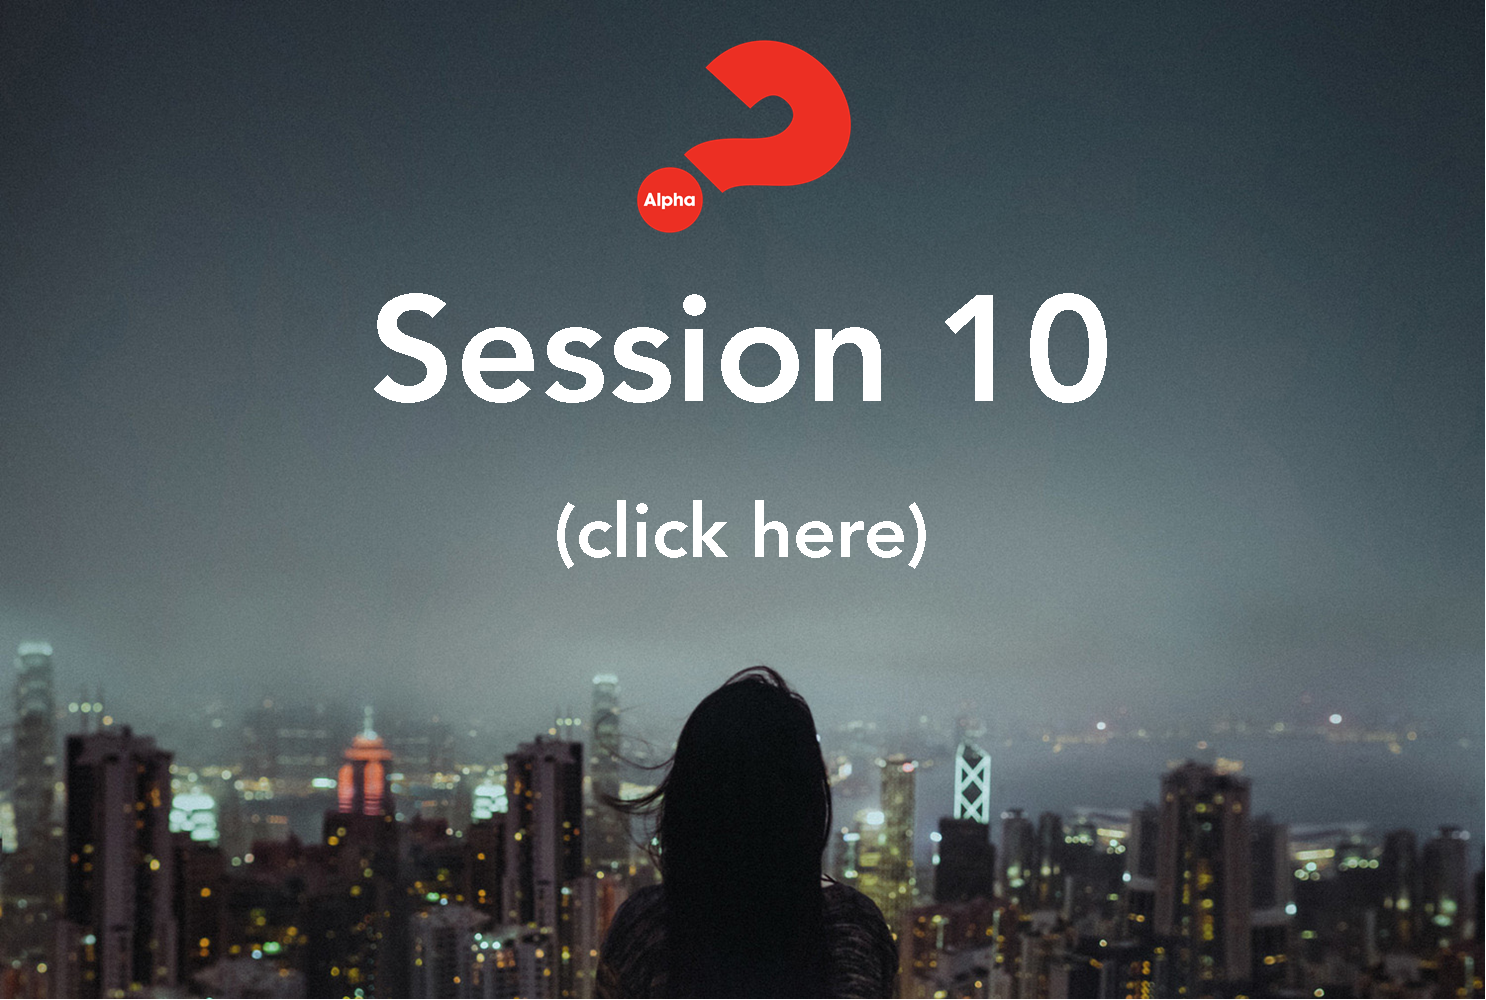 Session 10 WB.png